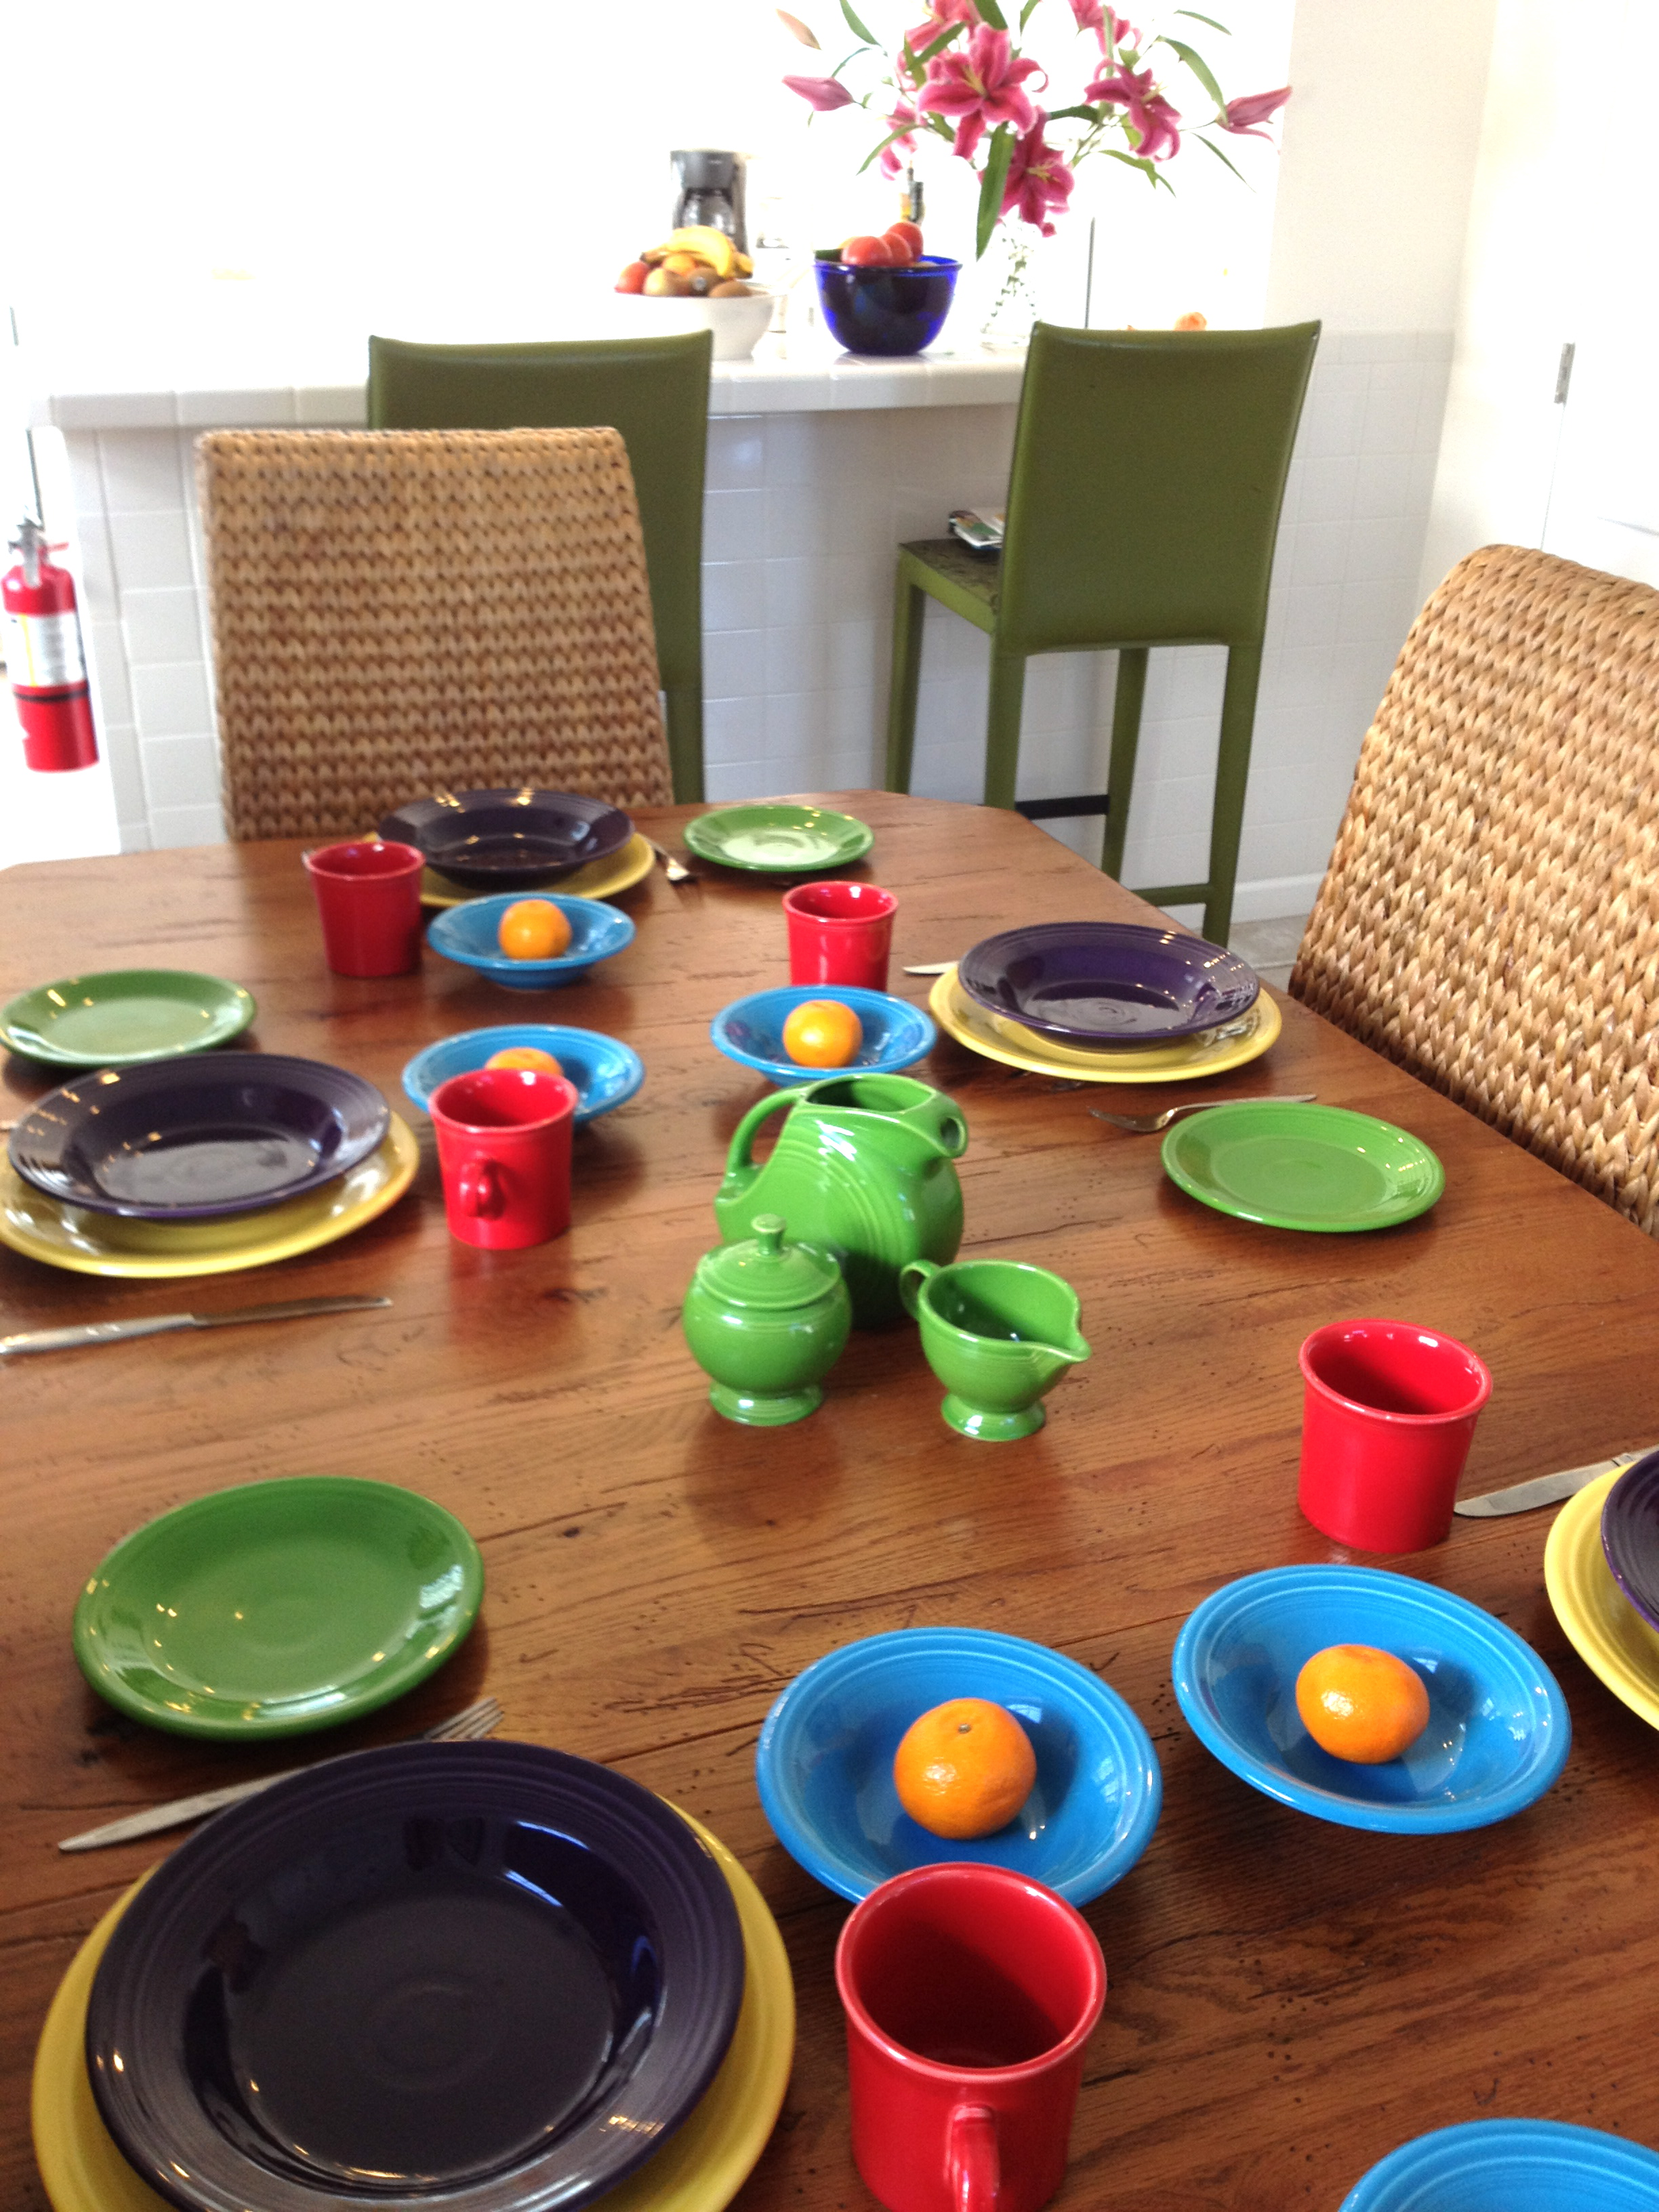 colorful diningware set by fiestaware on wooden dining table with wicker dining chairs for dining room decor ideas